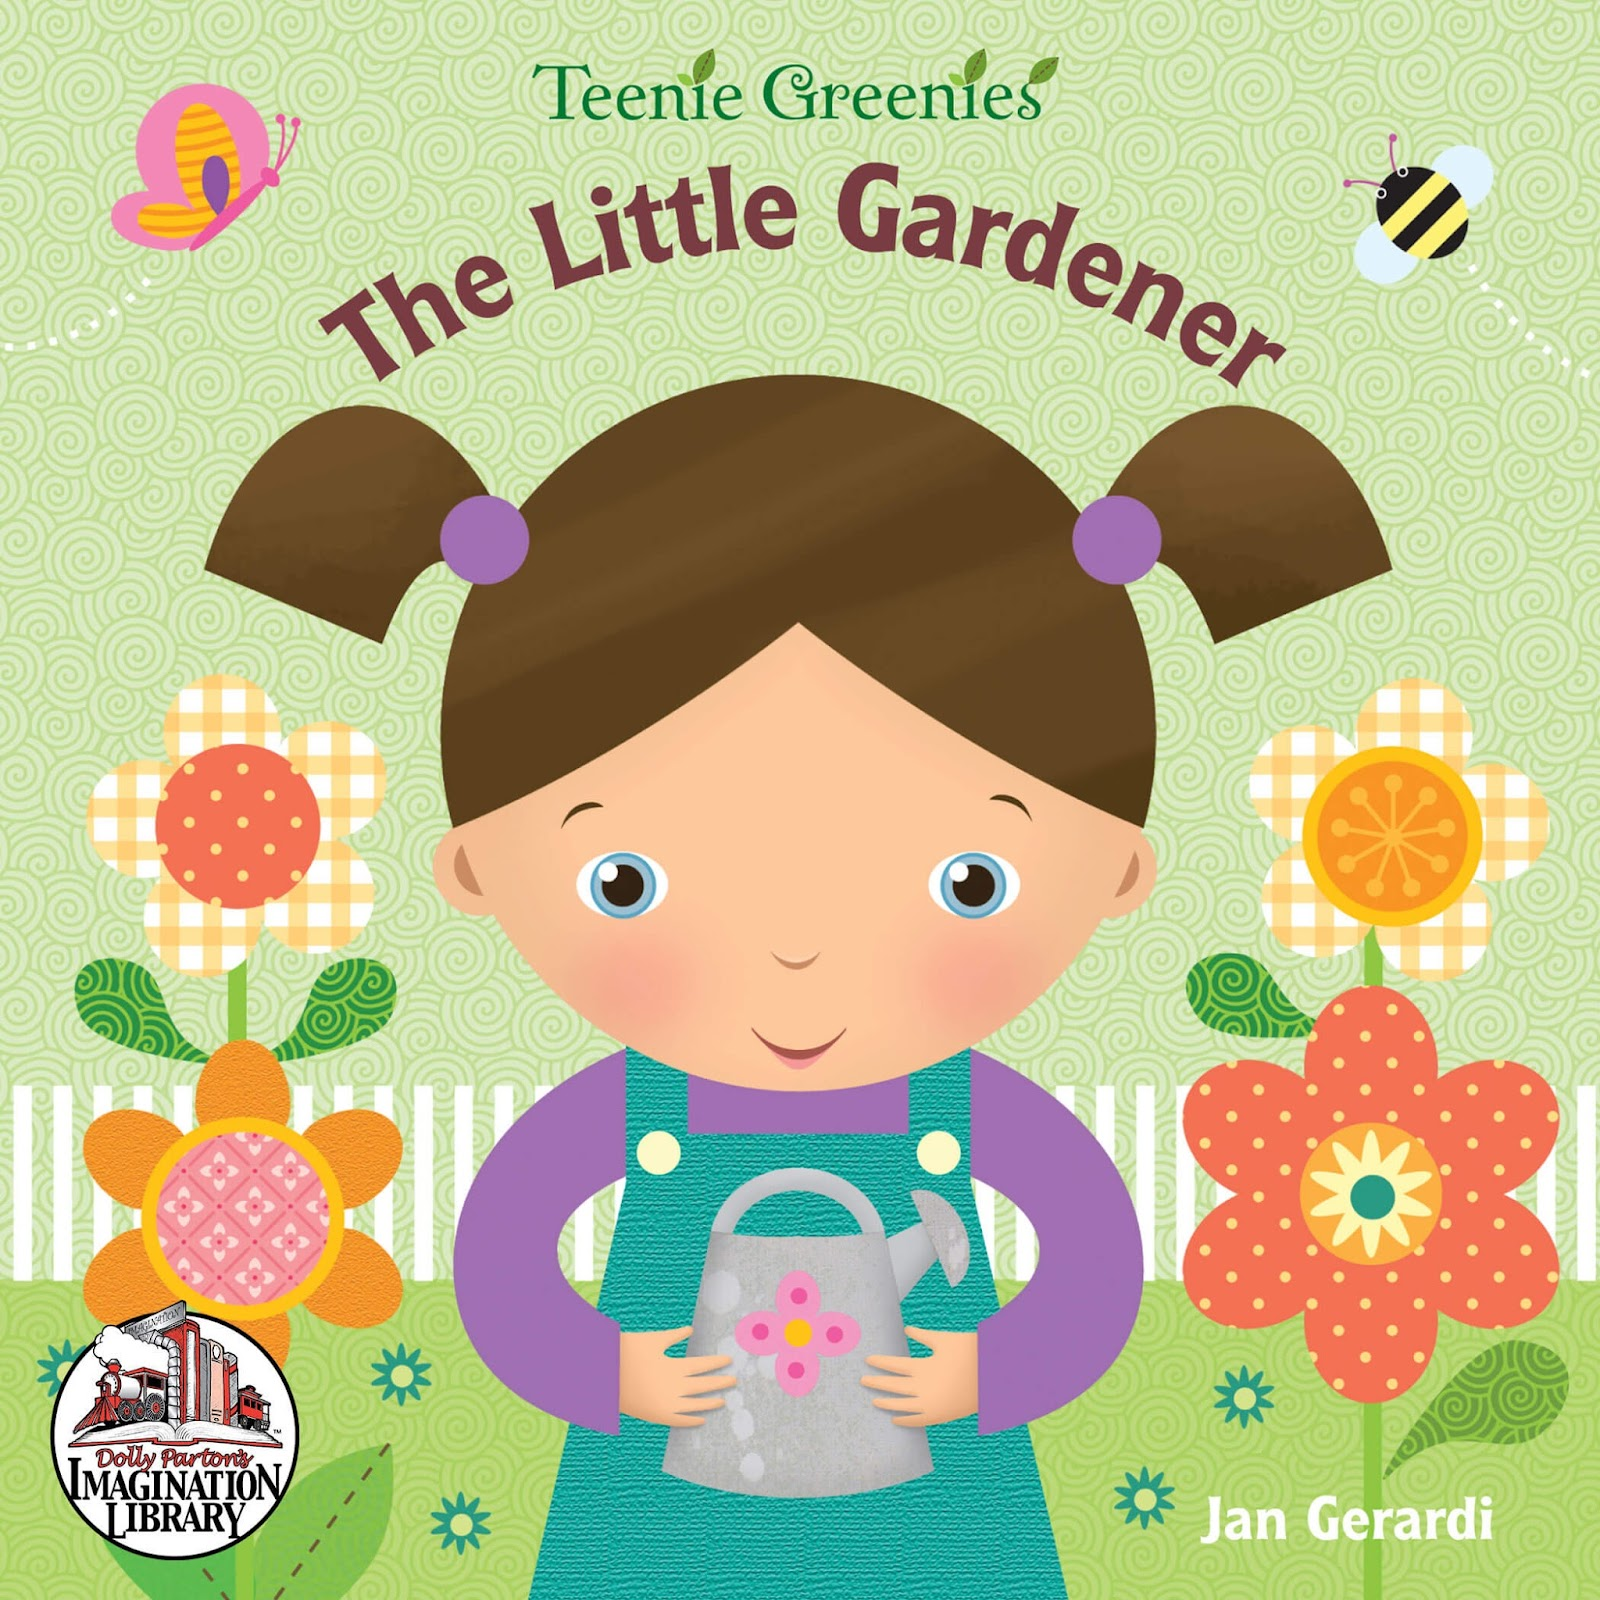 The-Little-Gardener_Instagram.jpg